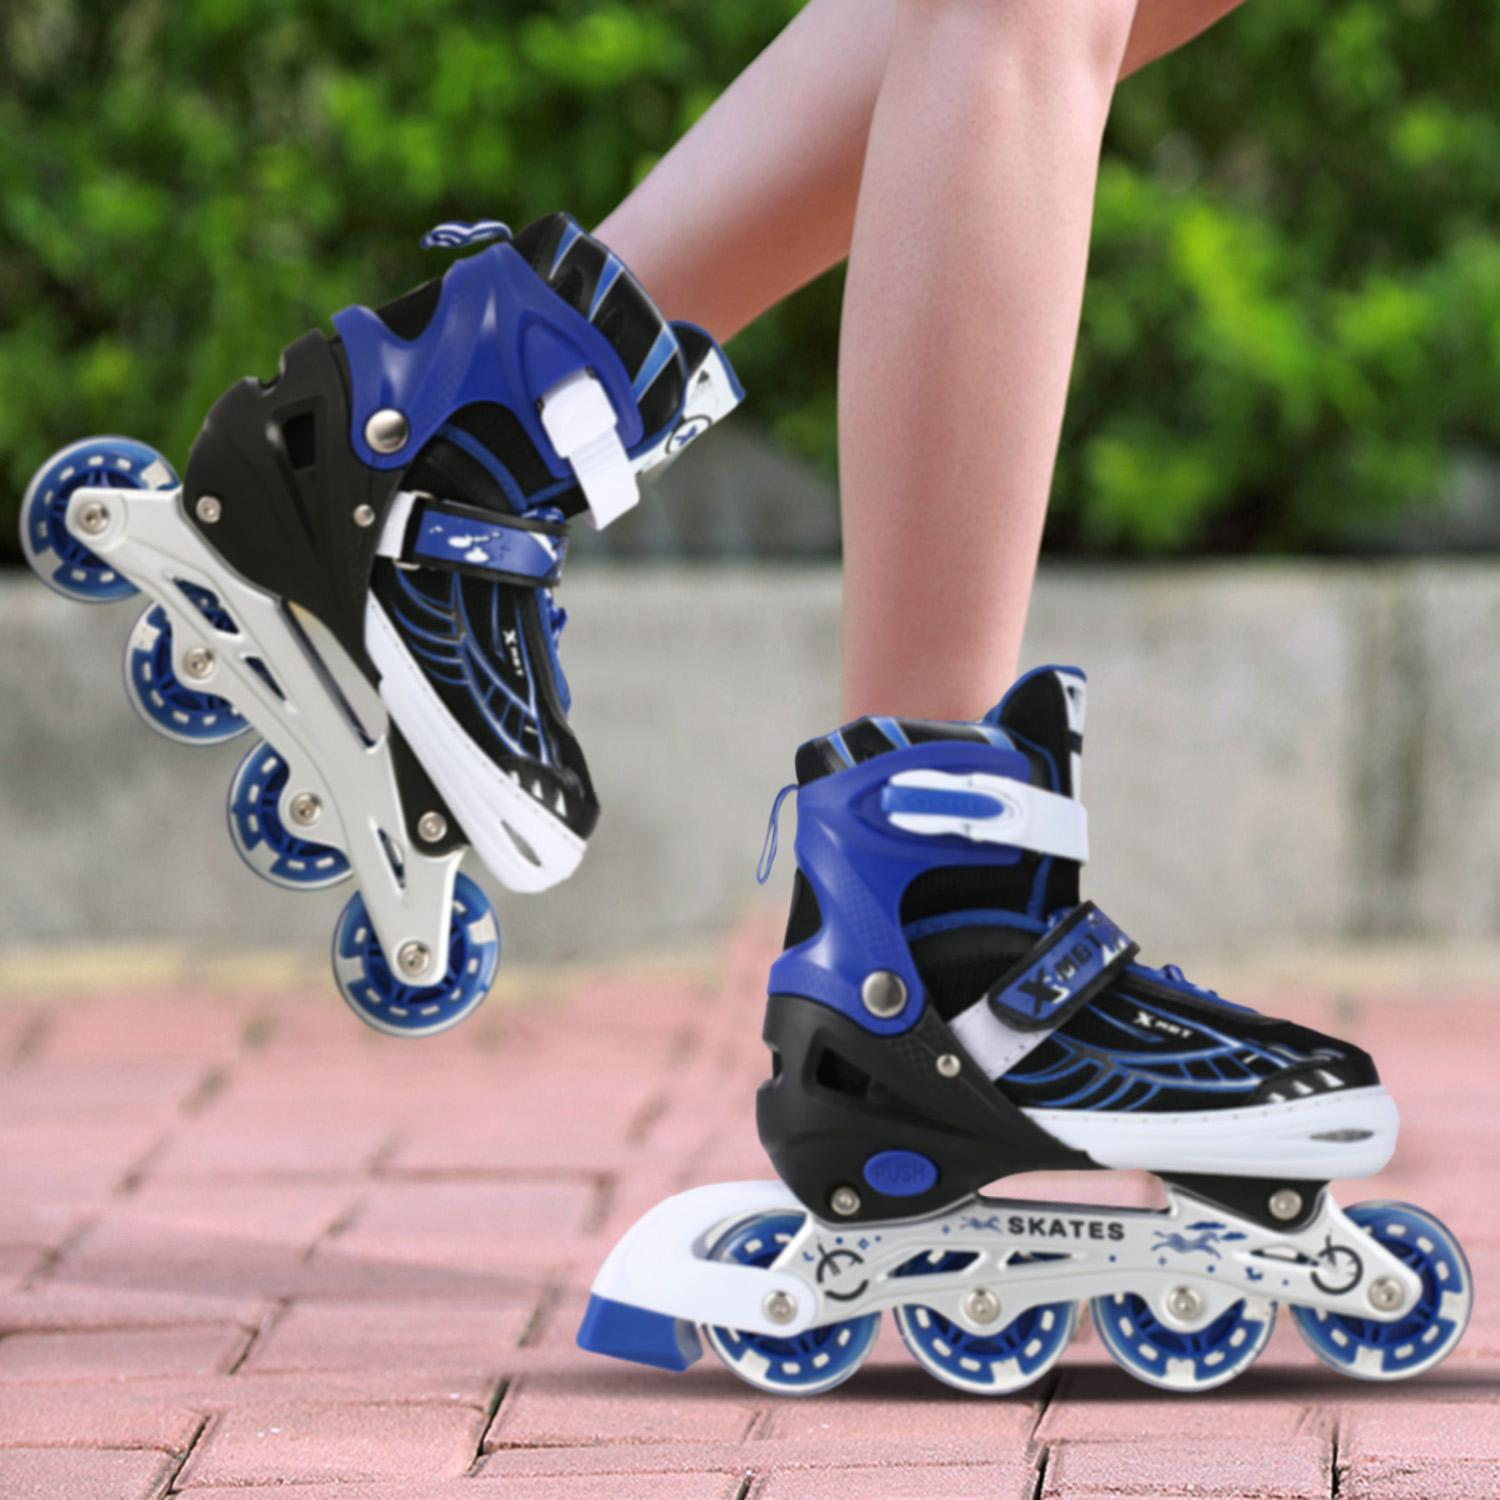 Adjustable Inline Skates for Kids, Rollerblades Girls Boys with Light up Wheels